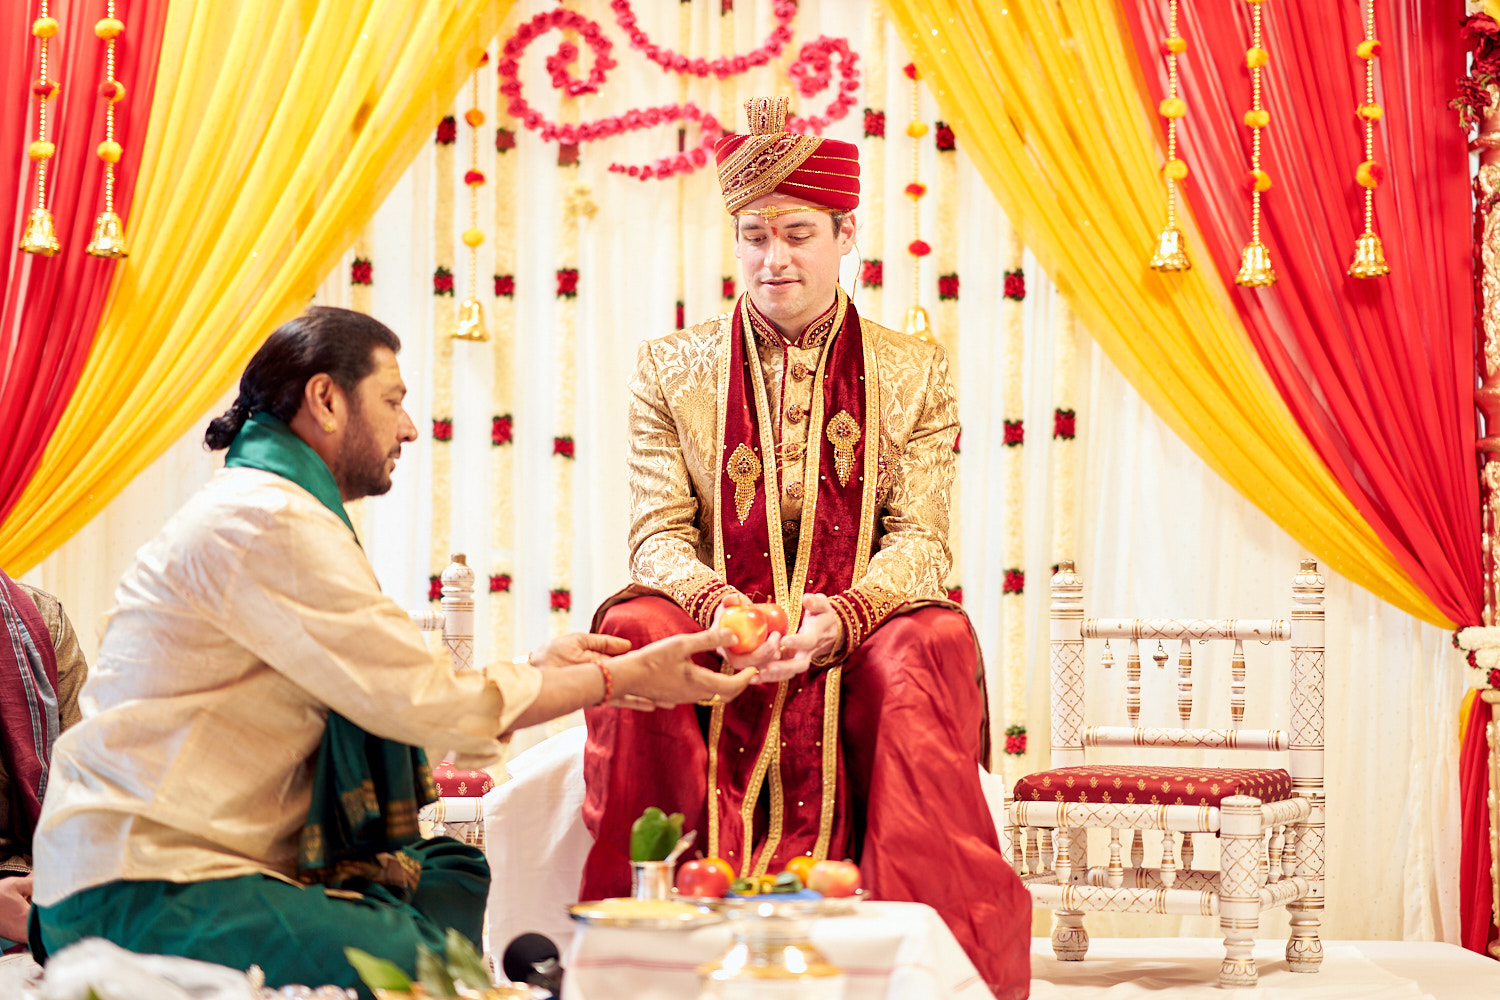 south-indian-wedding-ceremony-photography-by-afewgoodclicks-net-in-saratoga 62.jpg